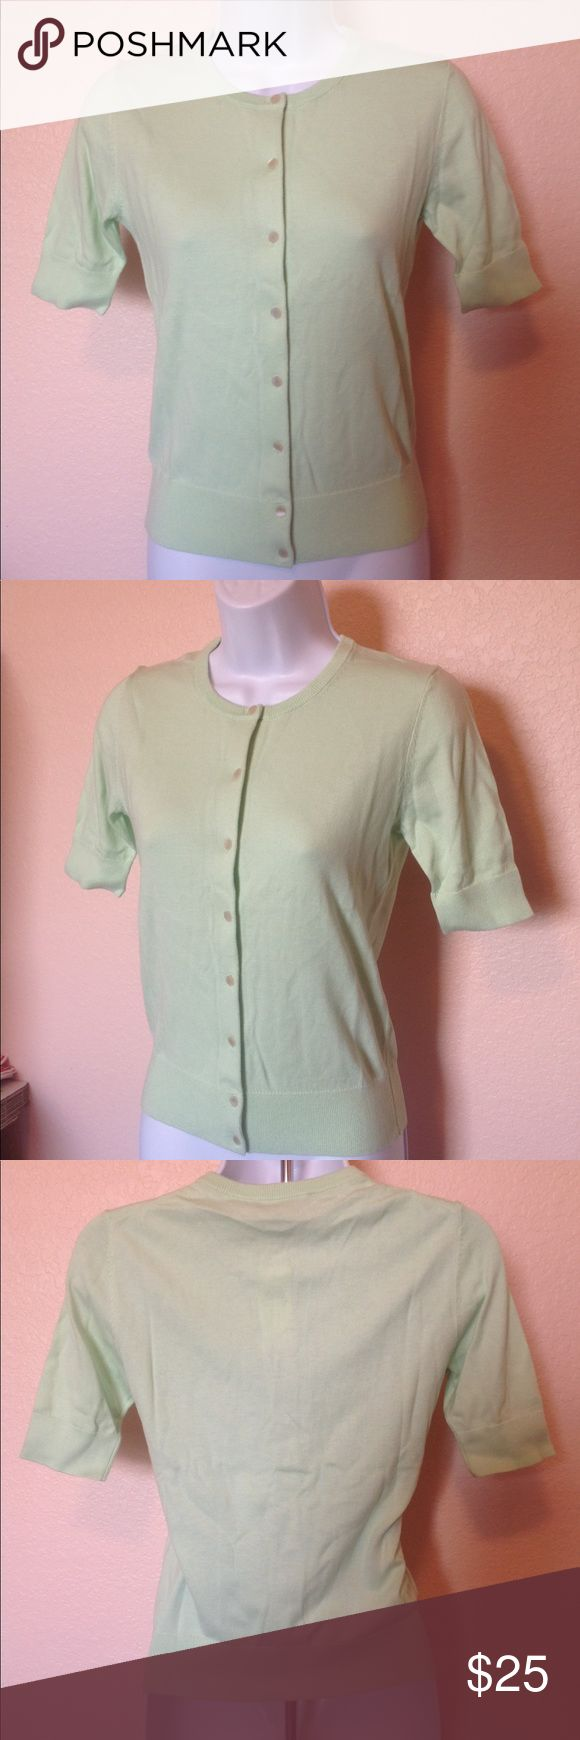 "NWT Ann Taylor Green Short Sleeve Cardigan Size XS Details:  Up for your consideration is a beautiful NWT pastel green short sleeve cardigan size XS by Ann Taylor.  Flat Measurements:  Bust (armpit to armpit) – 16""  Length – 22""  *Item is made from a stretchy material* Ann Taylor Sweaters Cardigans"